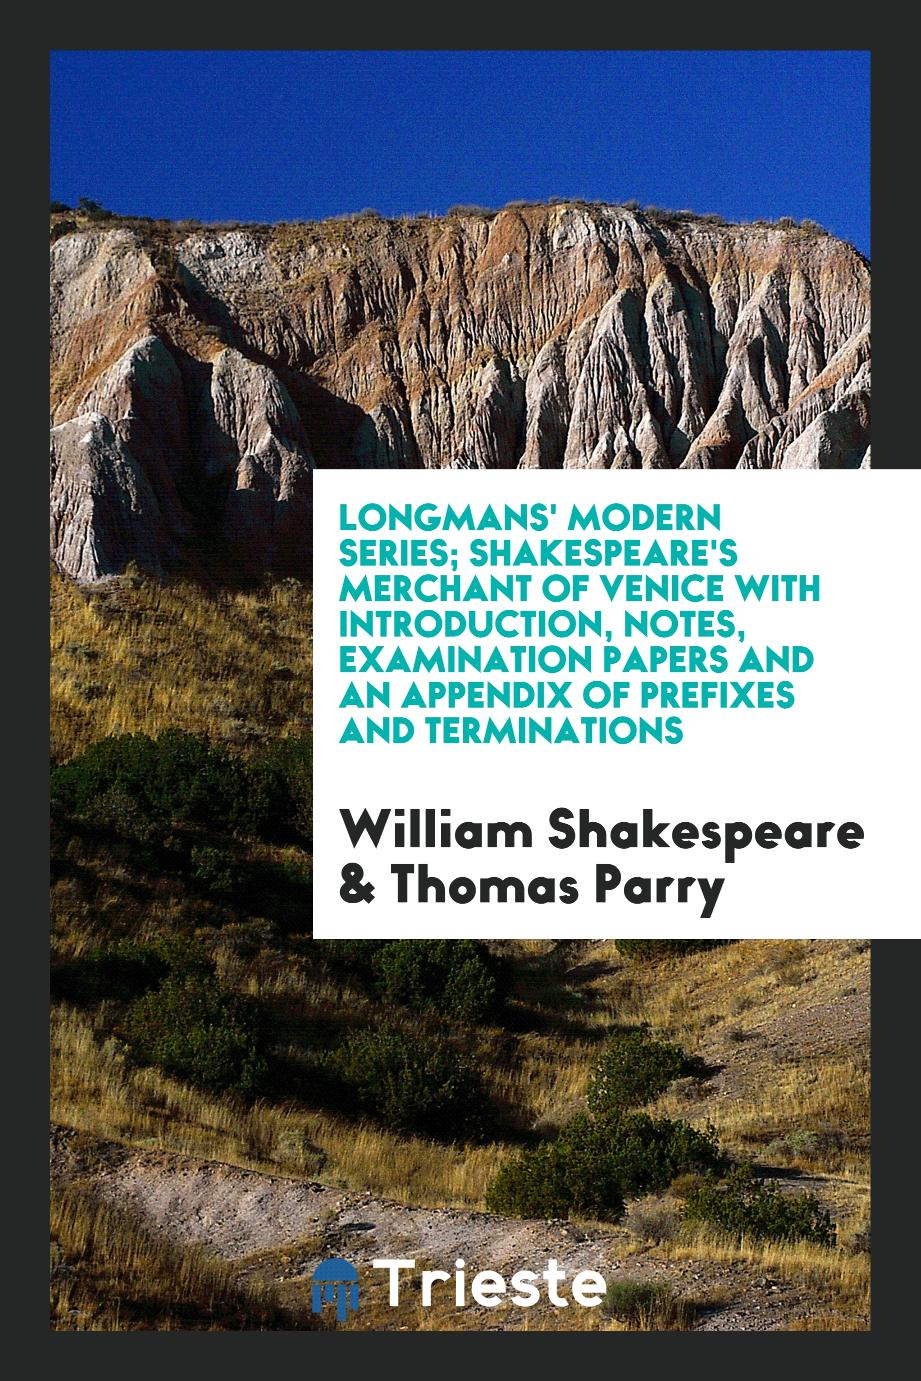 Longmans' Modern Series; Shakespeare's Merchant of Venice with Introduction, Notes, Examination Papers and an Appendix of Prefixes and Terminations